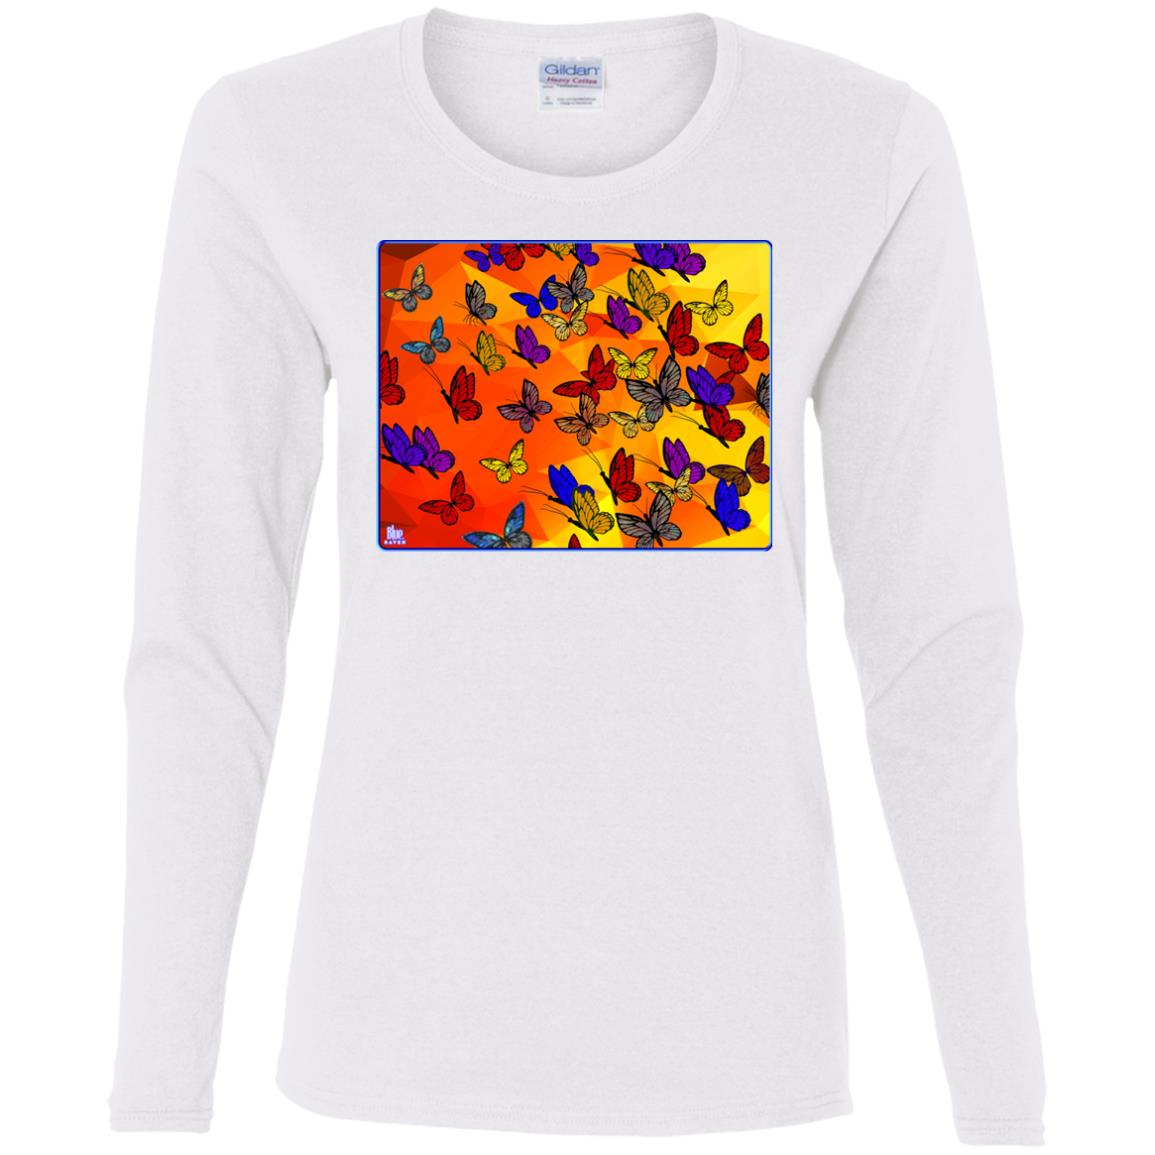 Butterflies - Women's Long Sleeve Tee